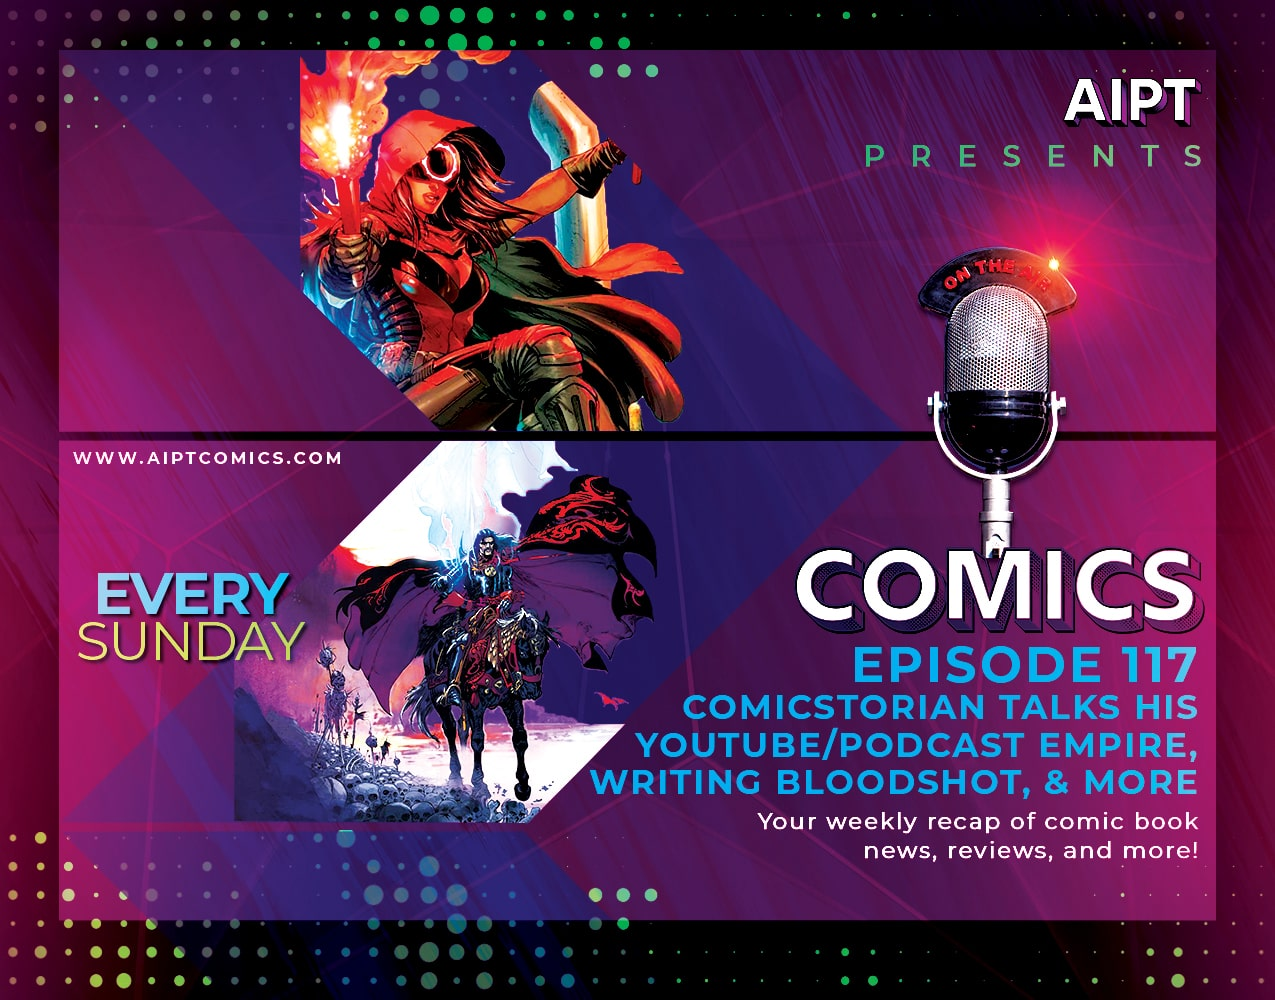 AIPT Comics Podcast Episode 117: Comicstorian talks his YouTube/podcast empire, writing 'Bloodshot', & more